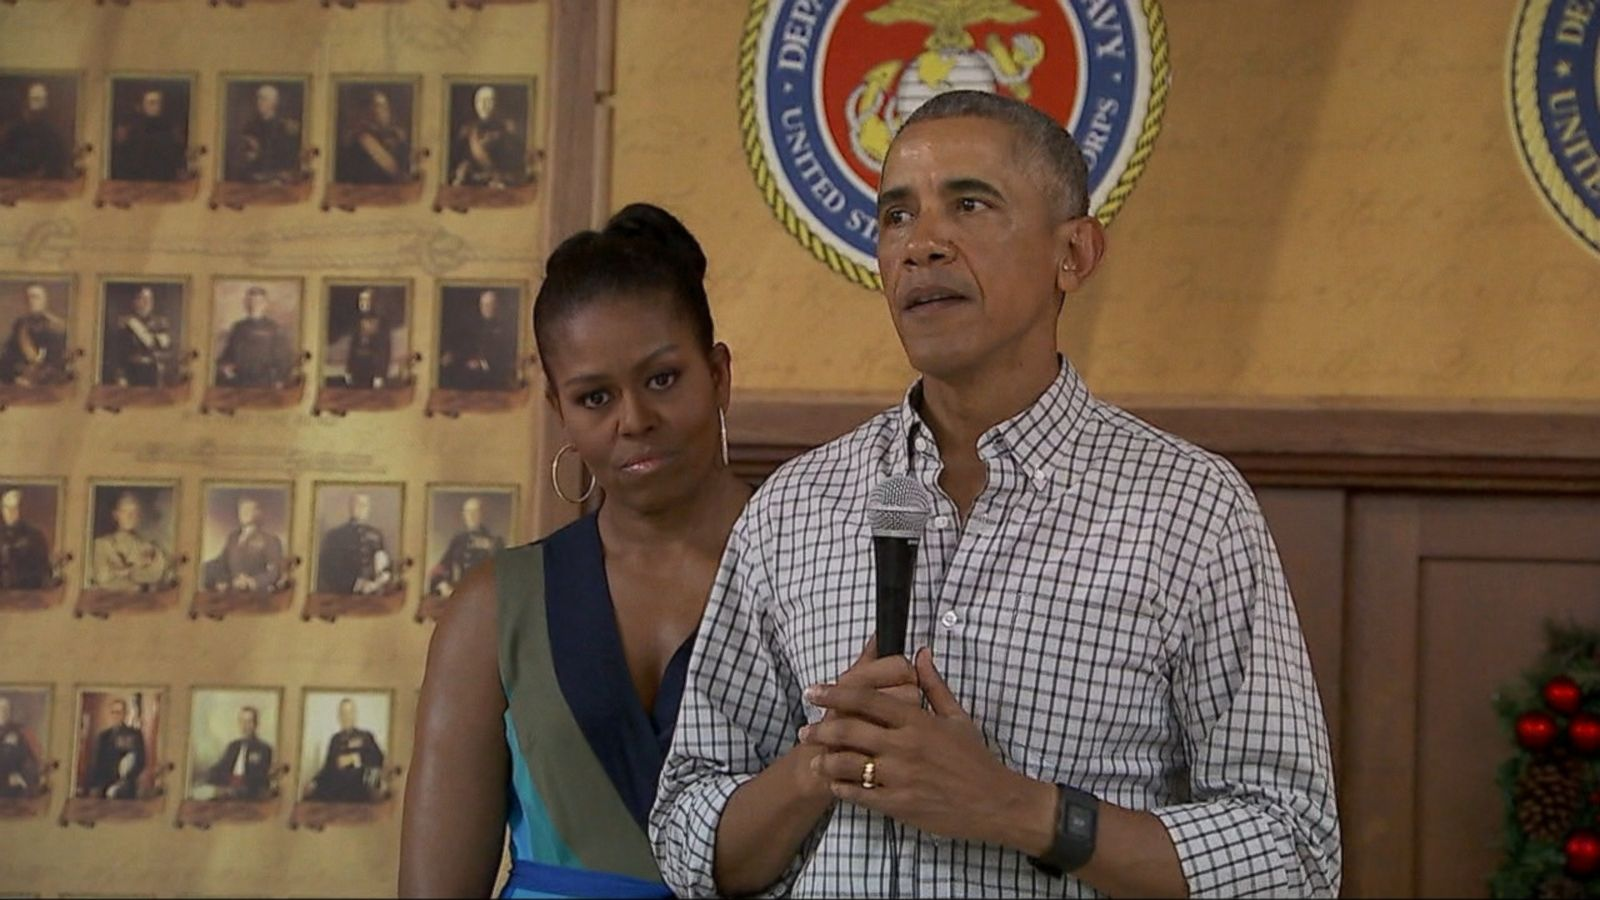 VIDEO: In his last Christmas as Commander-in-Chief, President Obama paid tribute to troops serving overseas.